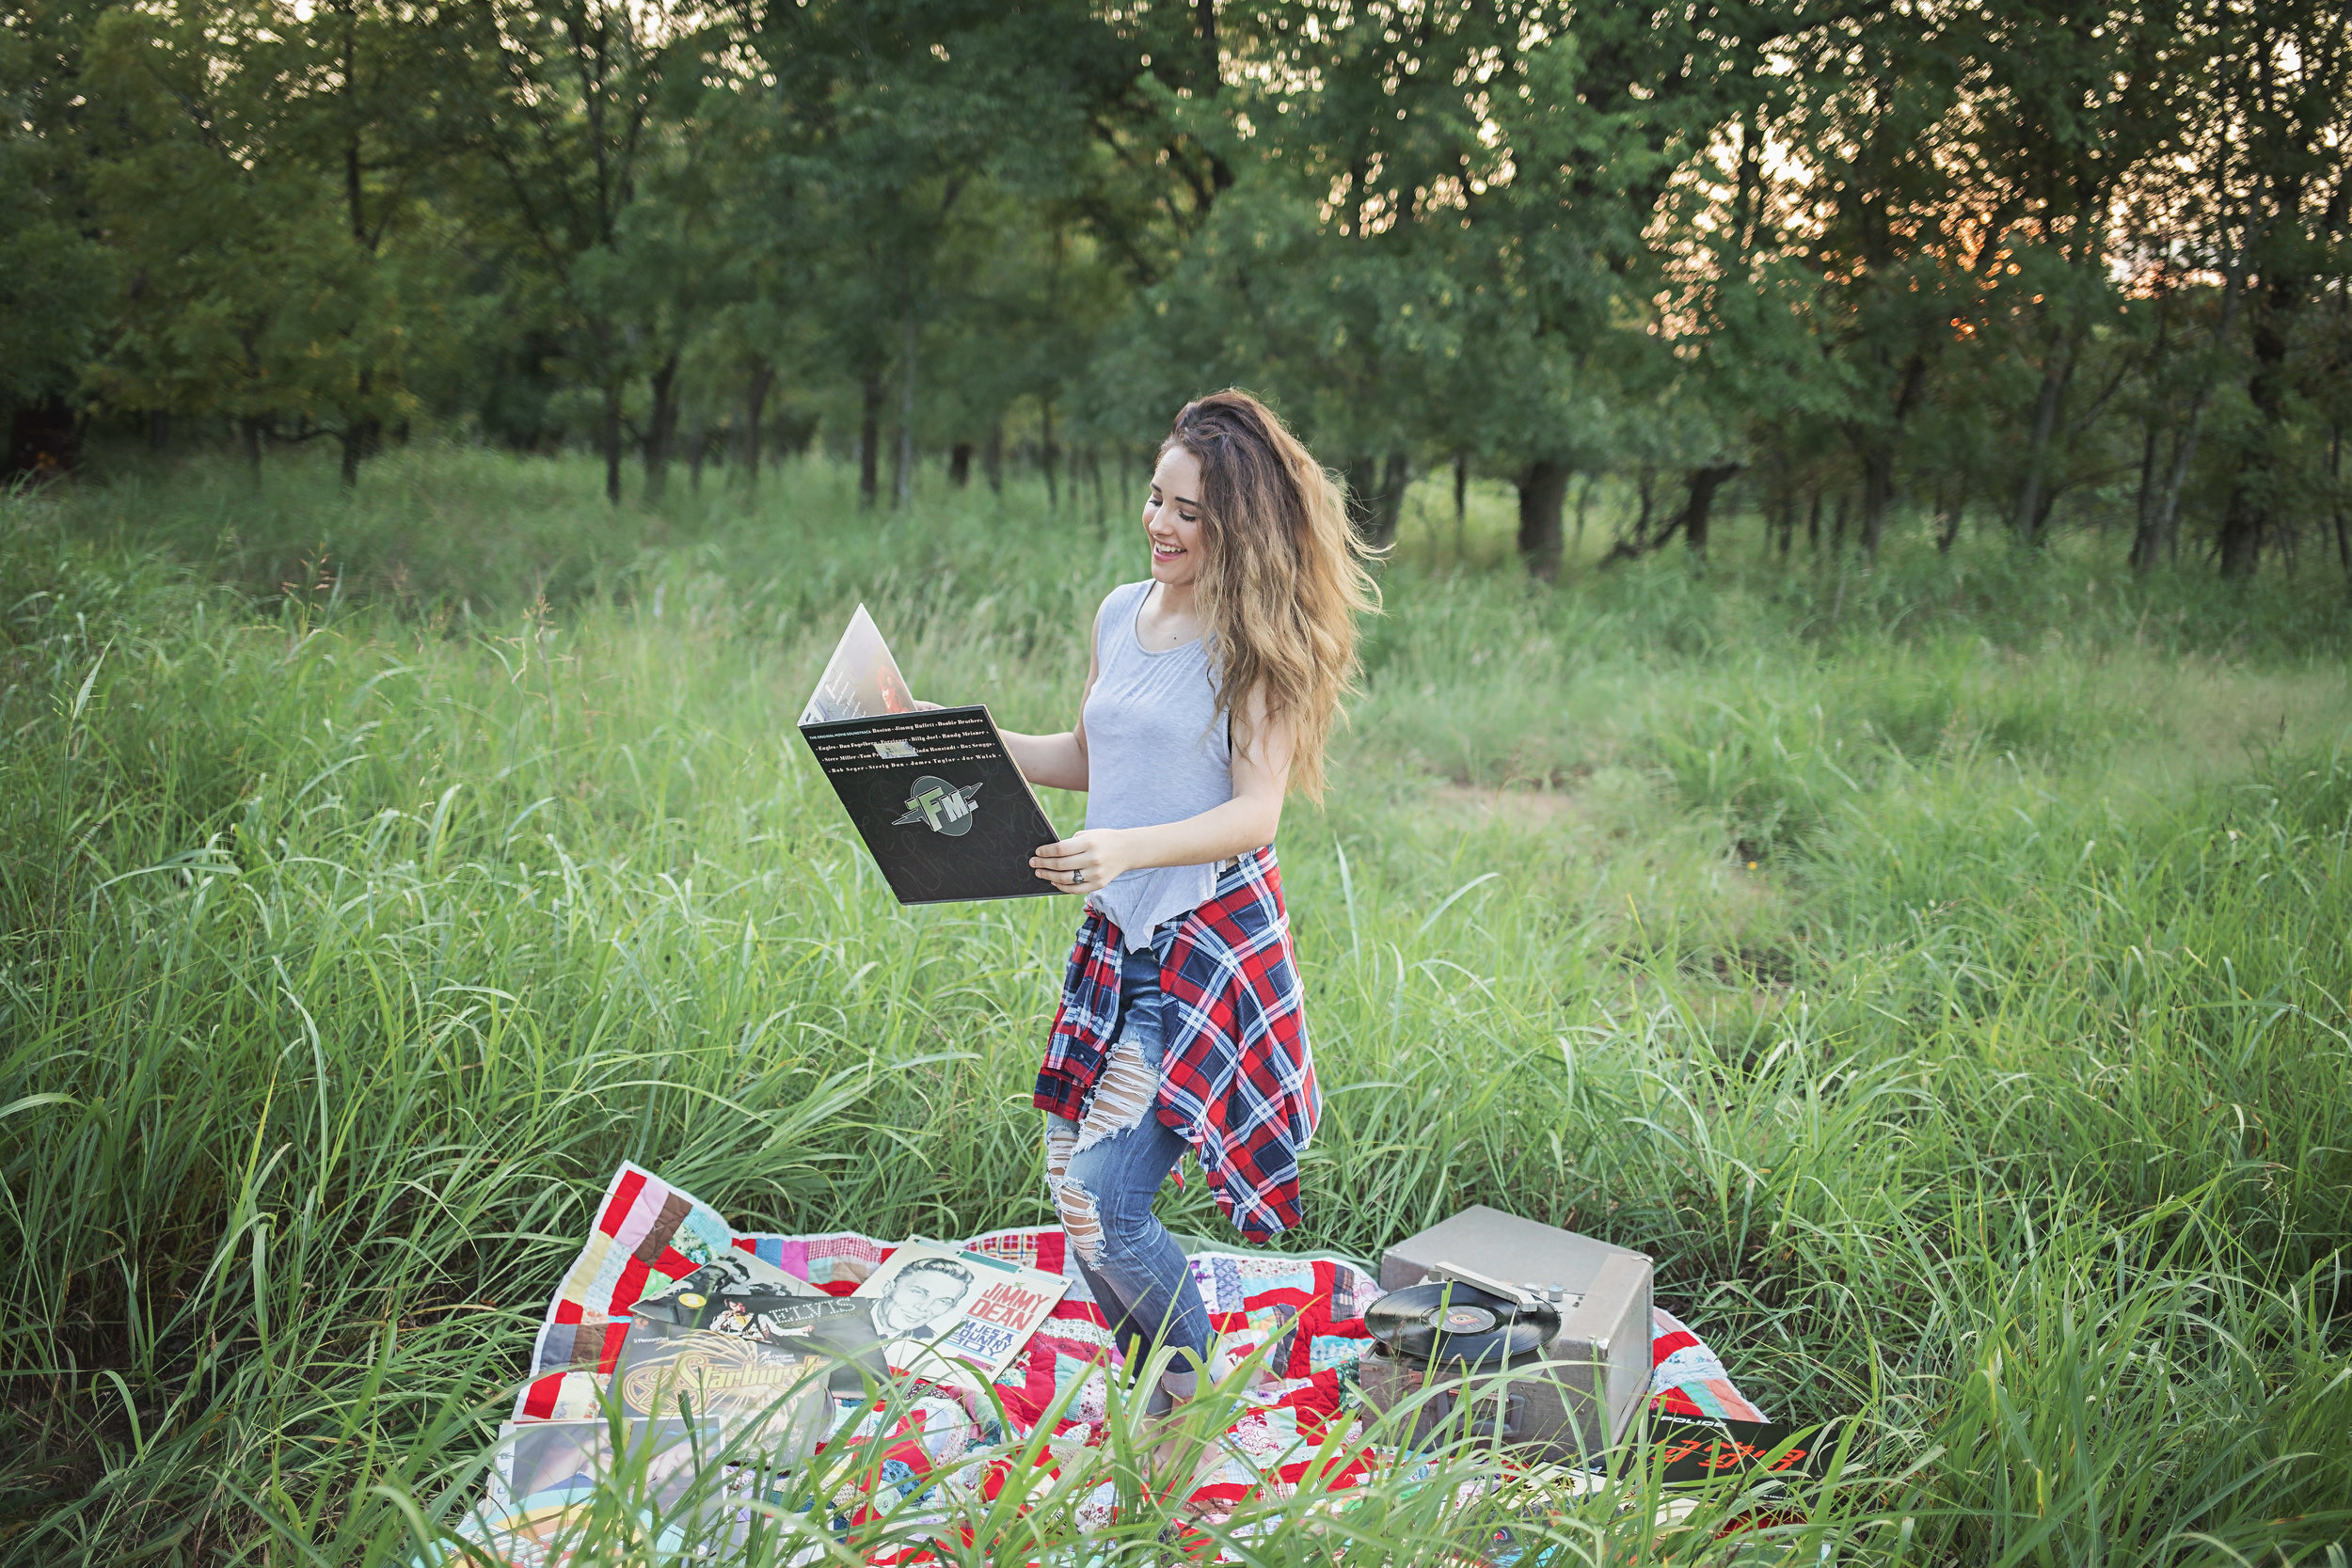 Oklahoma High School Senior dancing on red quilt in an open field in Oklahoma City.